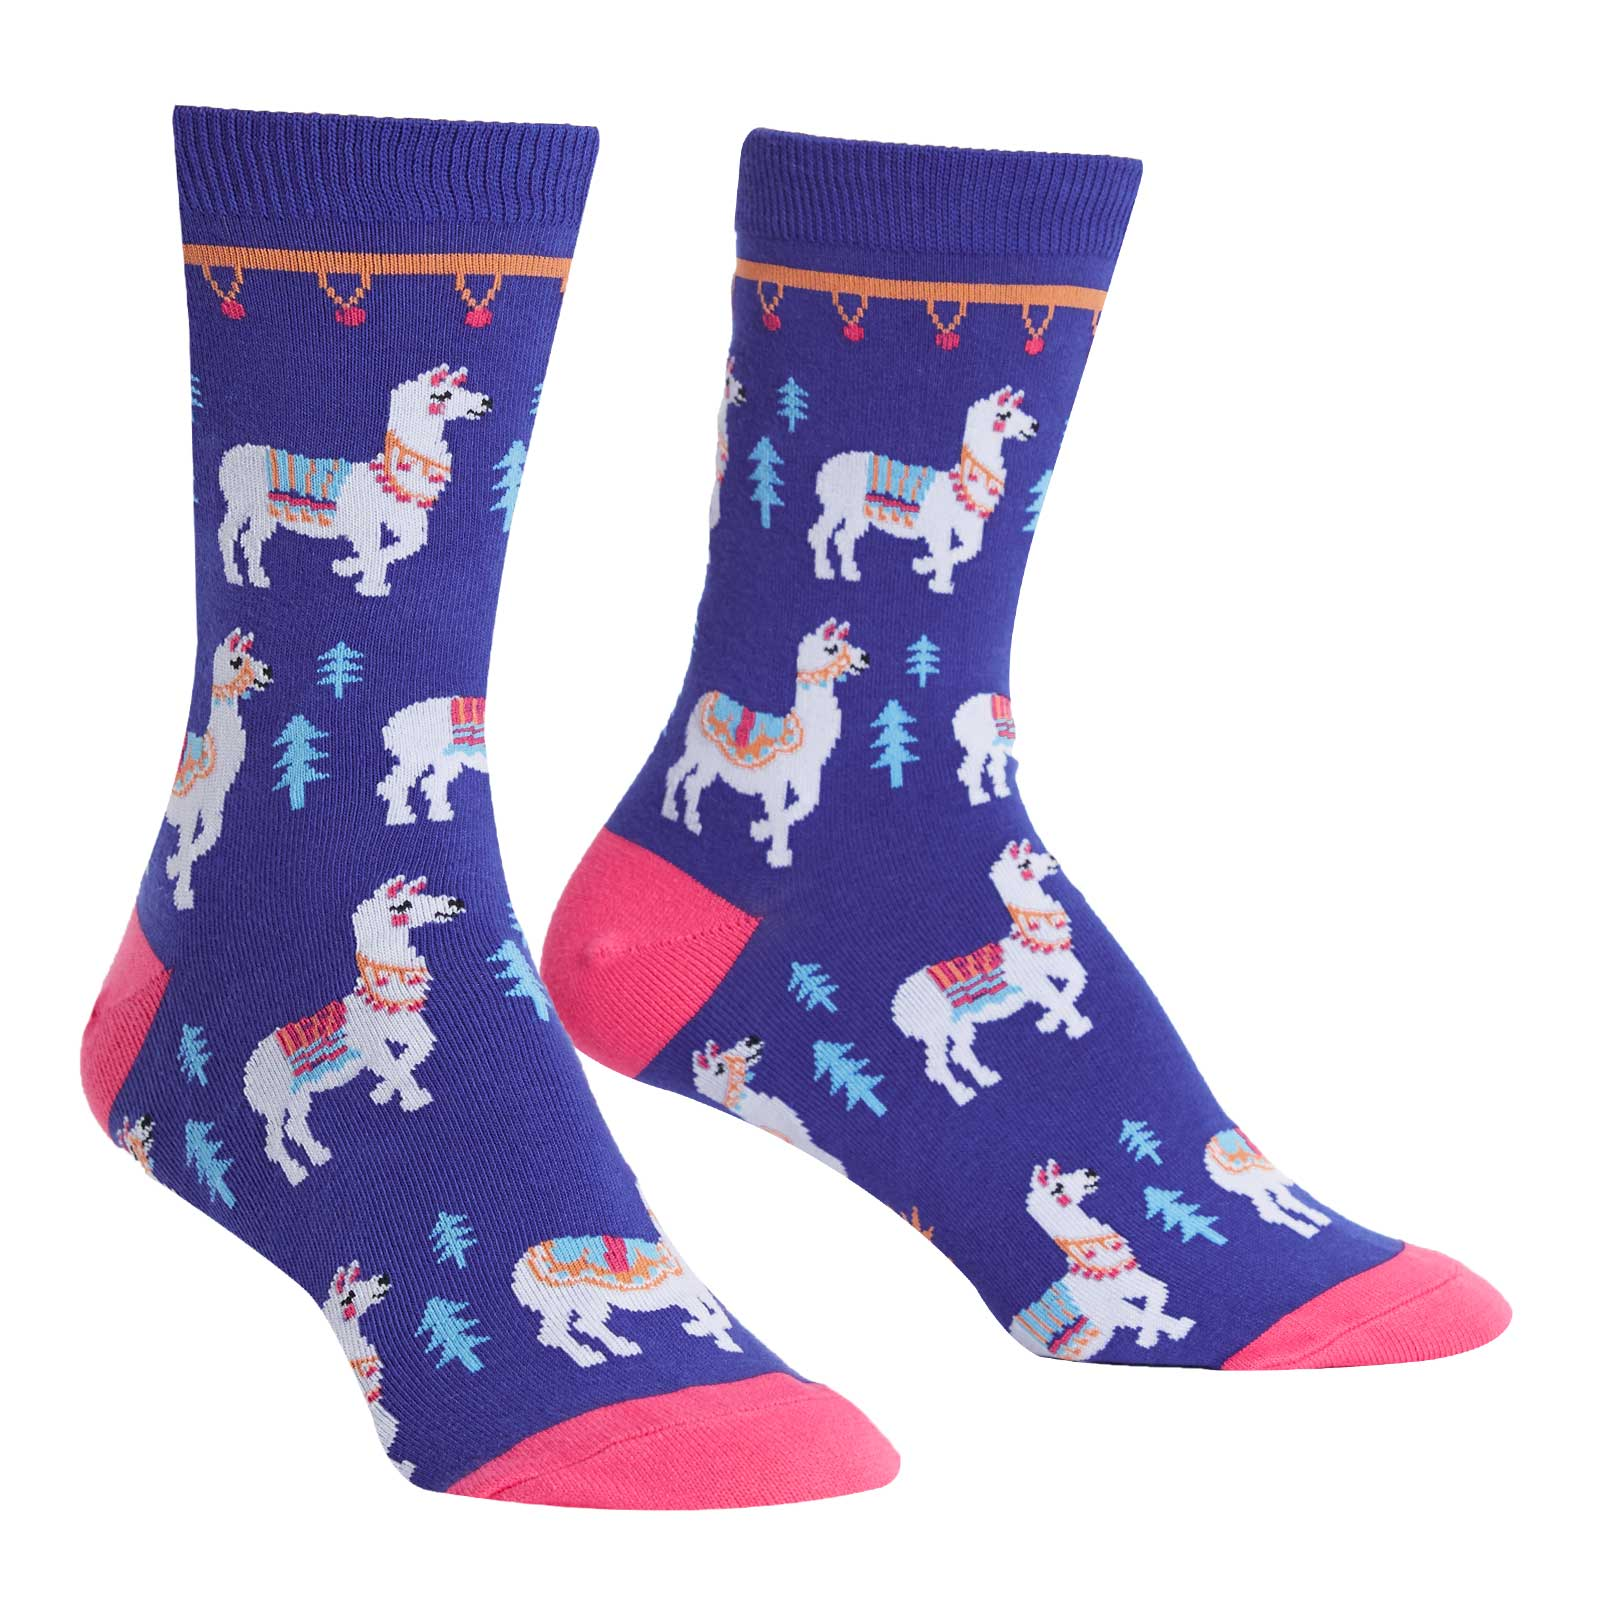 Cute llama socks for women with lllamas decorated in fancy blankets, pompoms and ribbons.